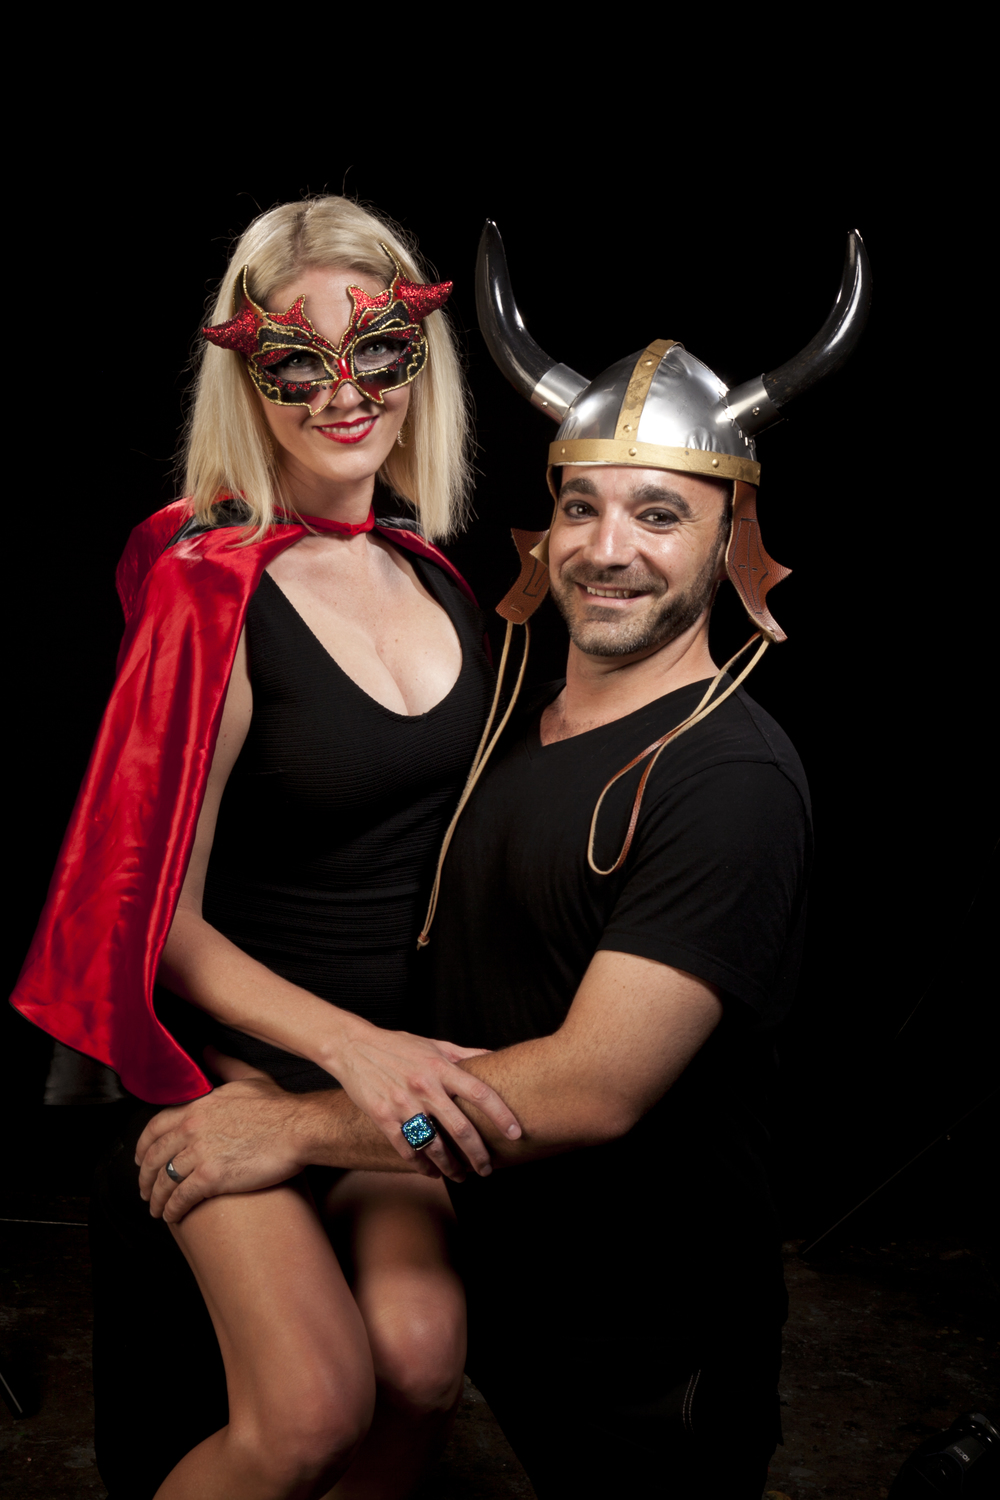 Mr and Mrs Horned hat IMG_4409.jpg